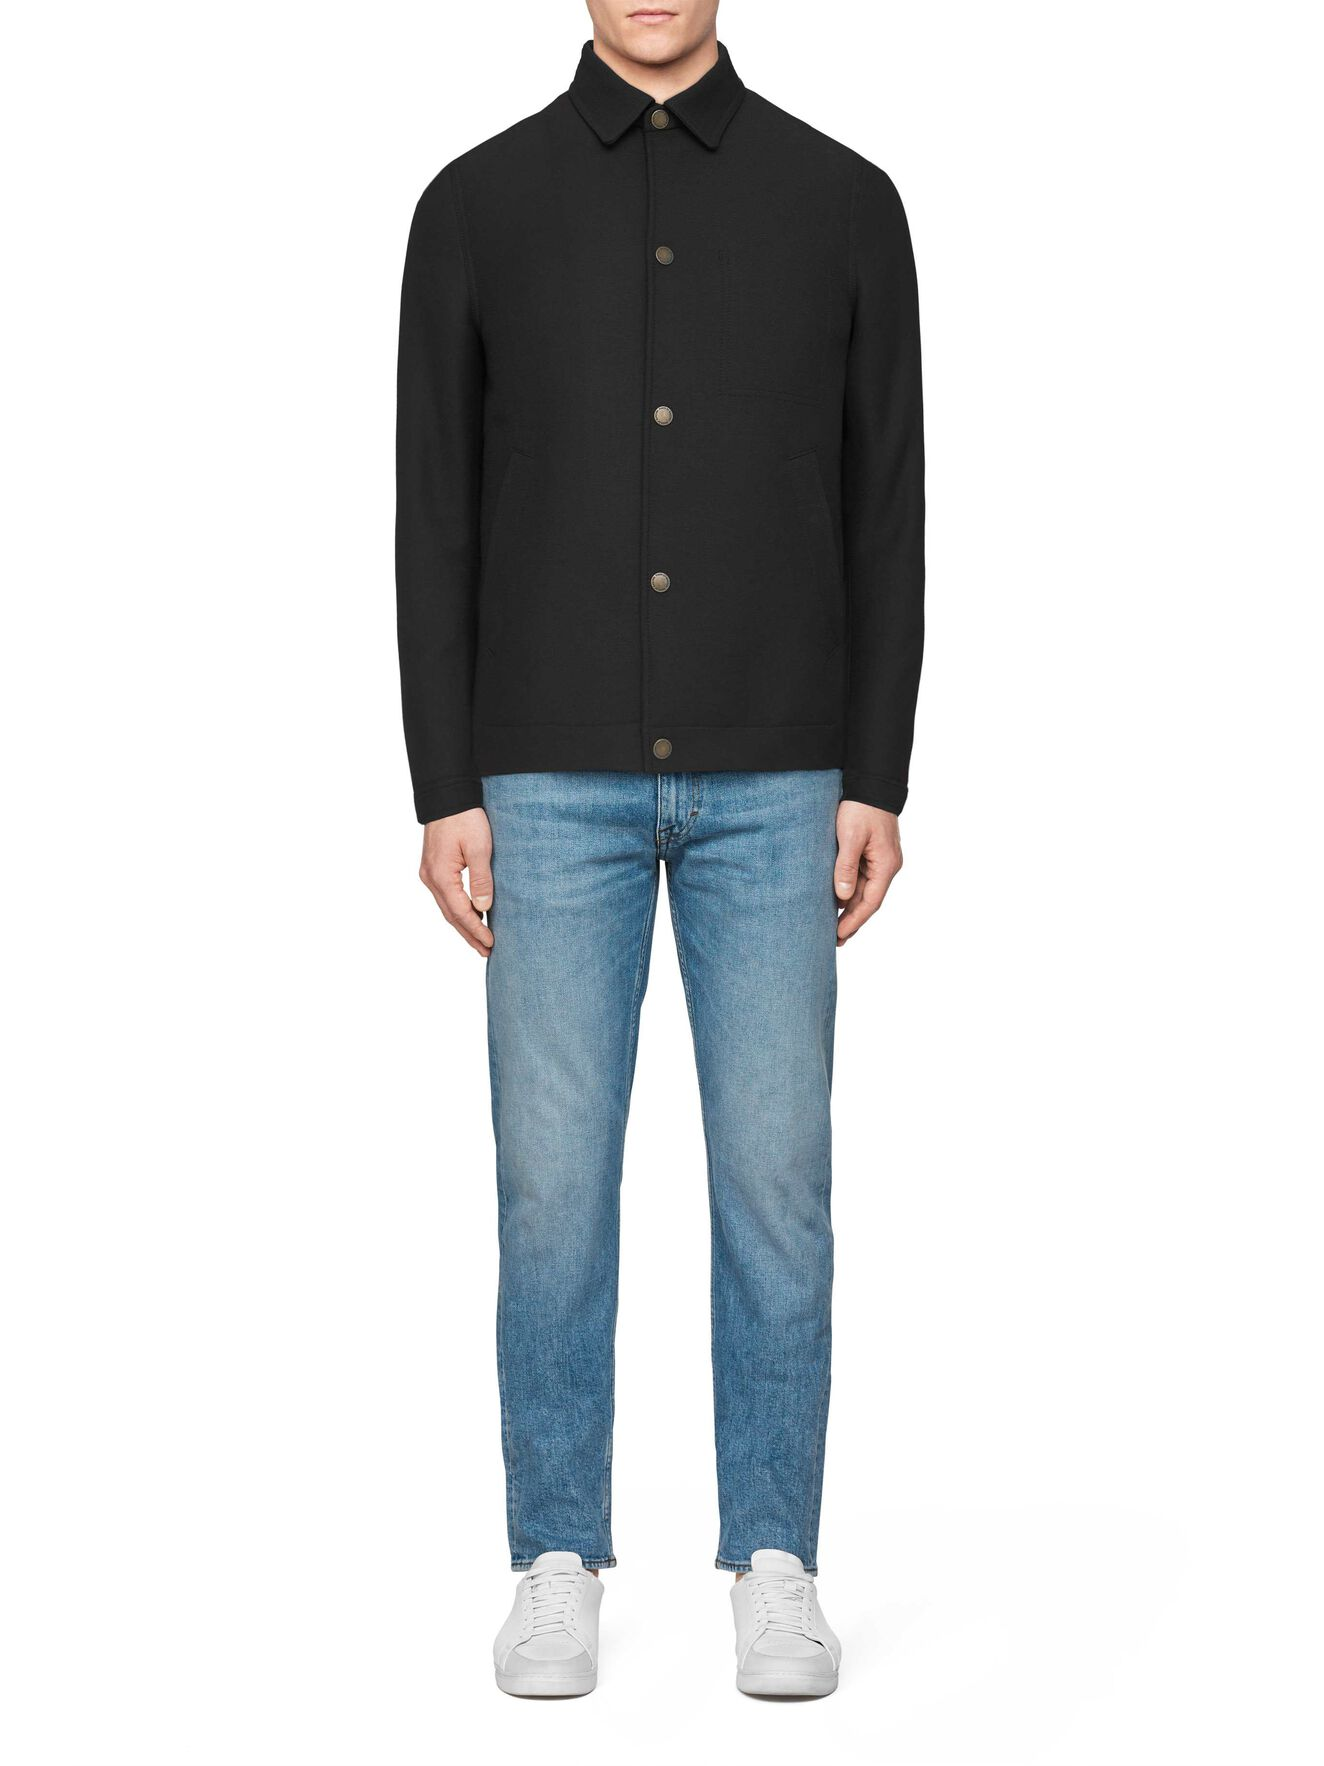 Kempes Blazer in Black from Tiger of Sweden